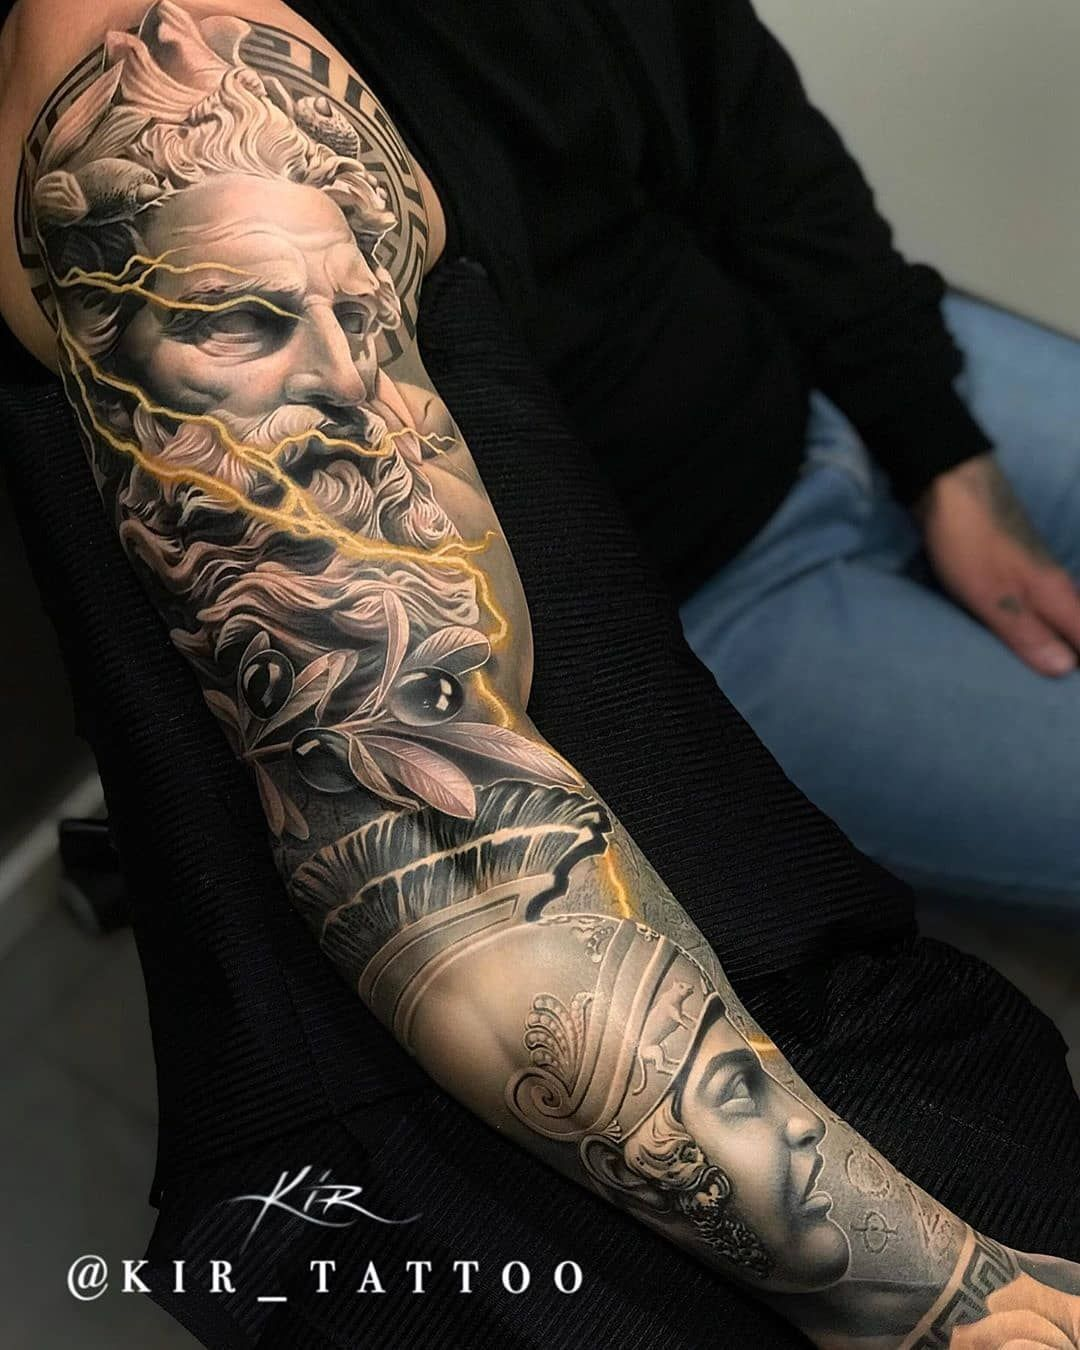 10 3k Likes 63 Comments Tattoo Realistic Tattoorealistic On Instagram Outstanding Pieces By Kir Tattoo L In 2020 Greek Tattoos Mythology Tattoos Zeus Tattoo